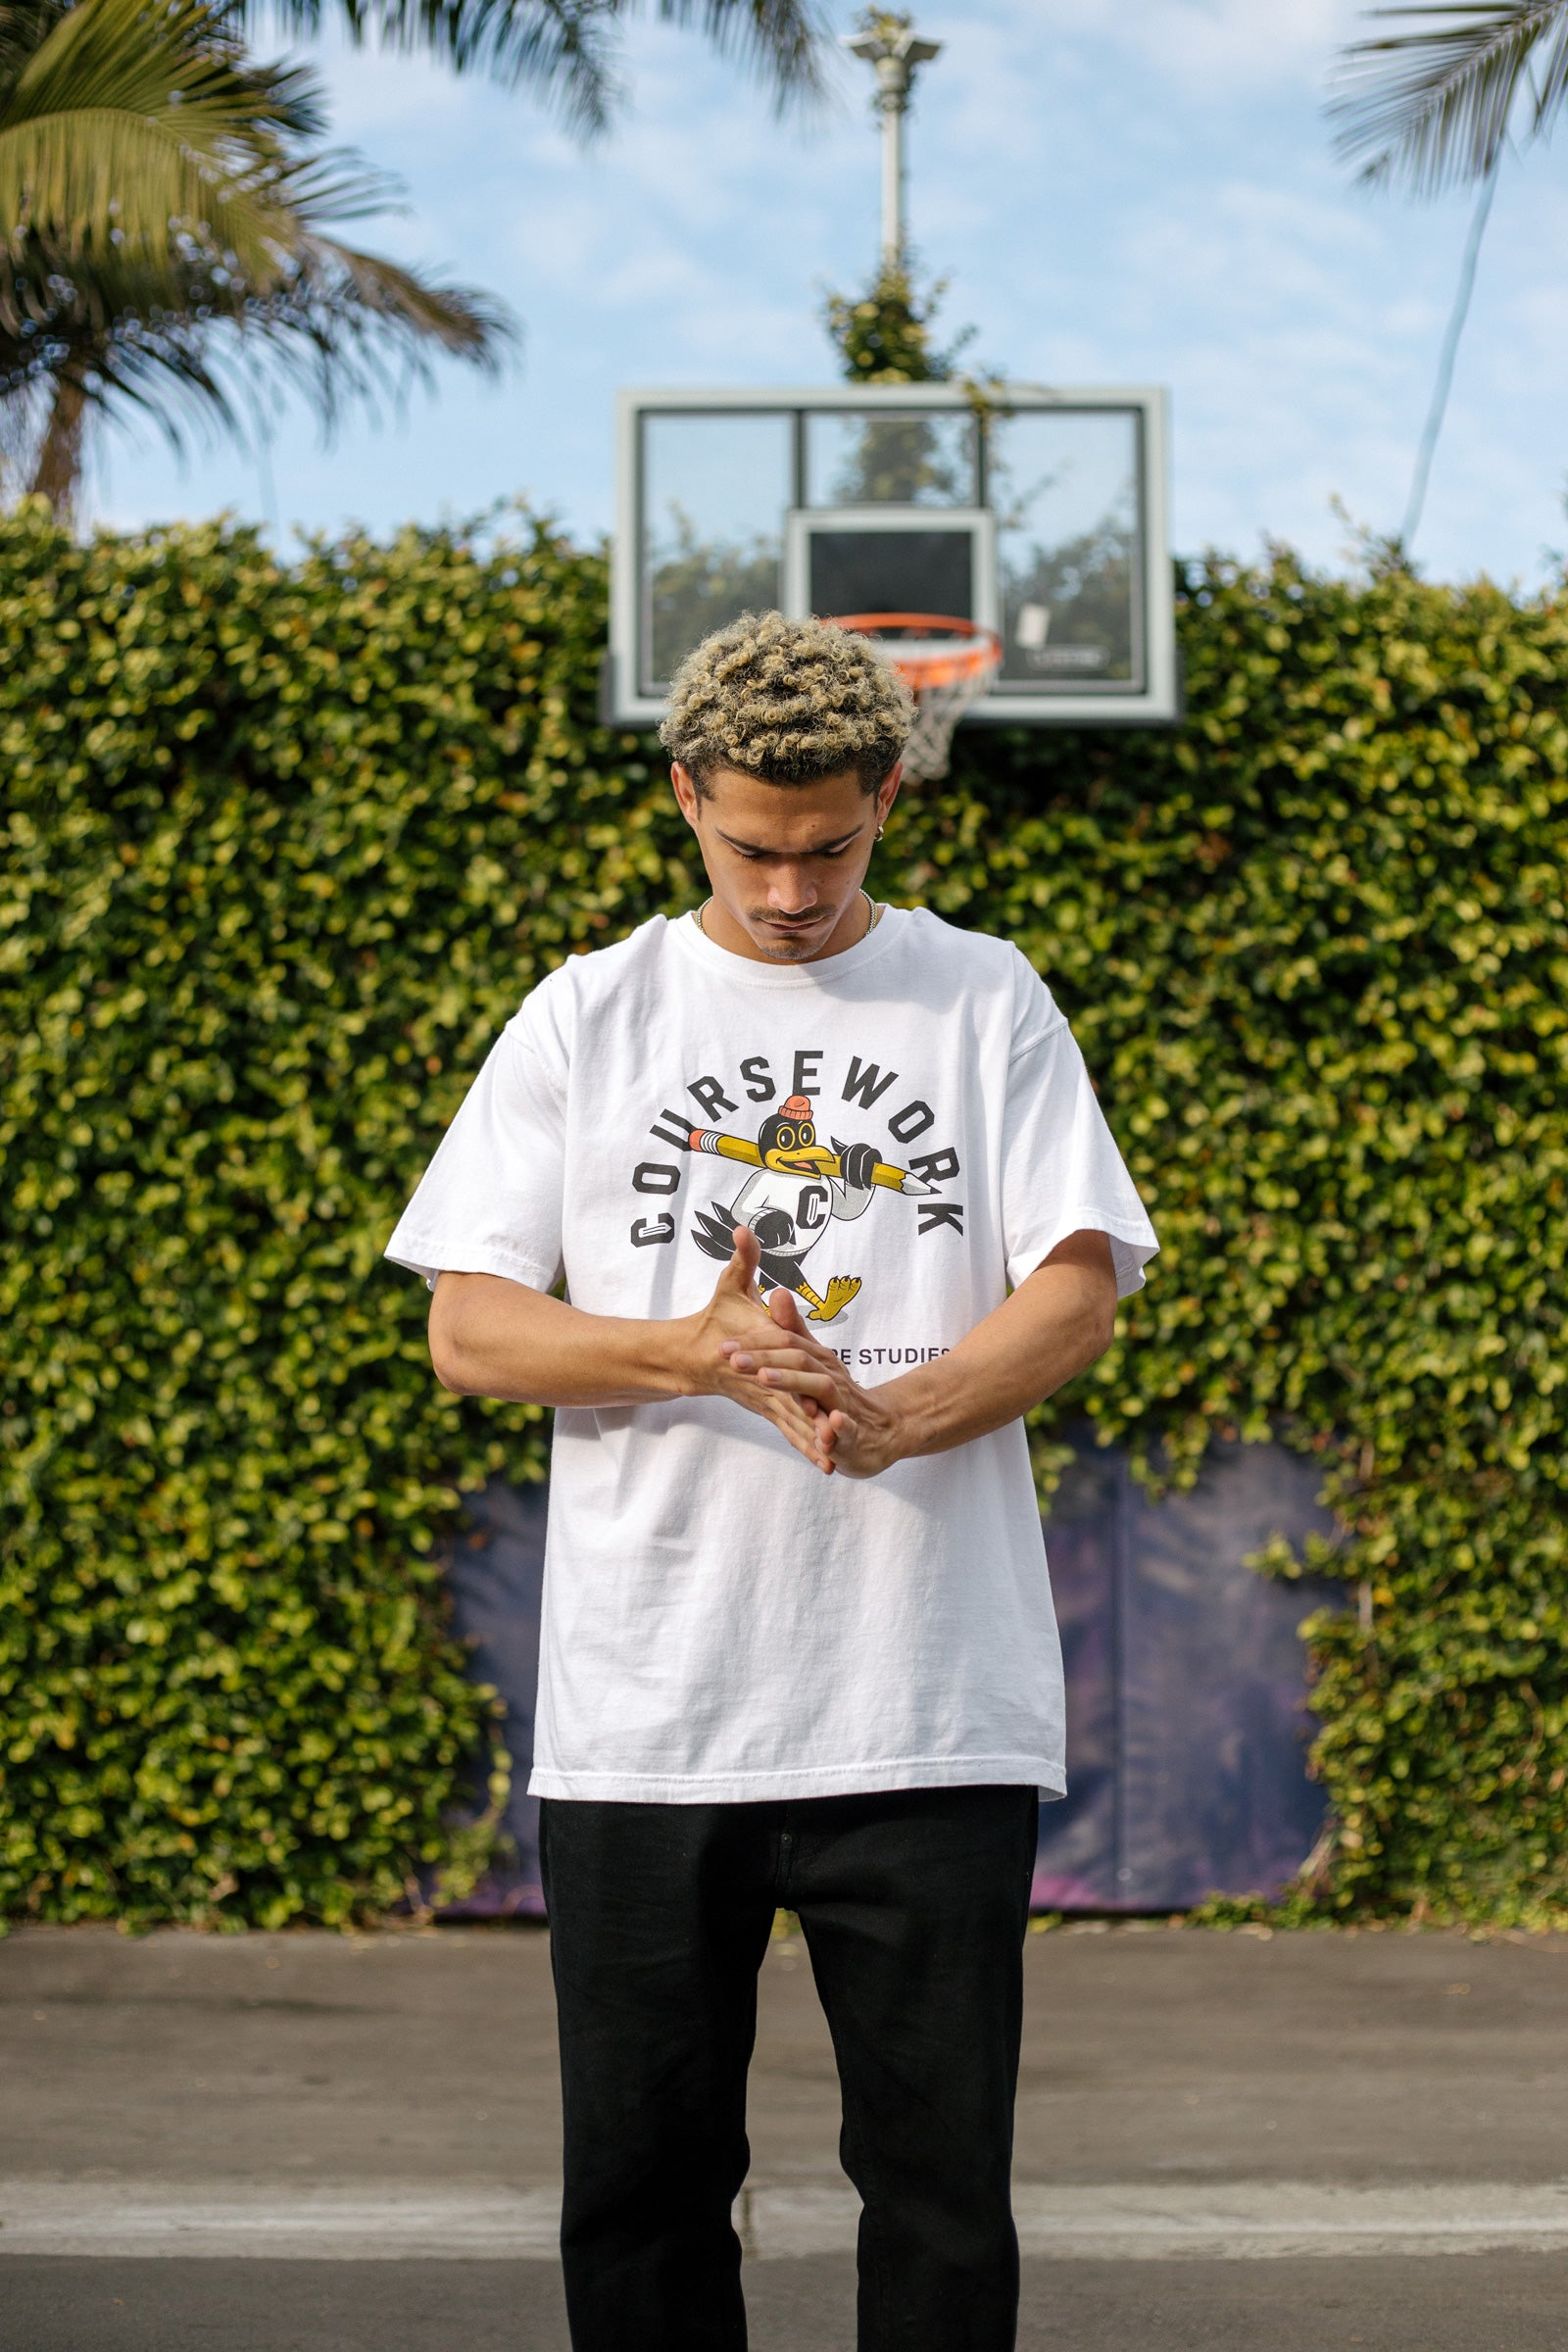 Model wearing the Early Birds tee with a basketball hoop and green foliage behind him.